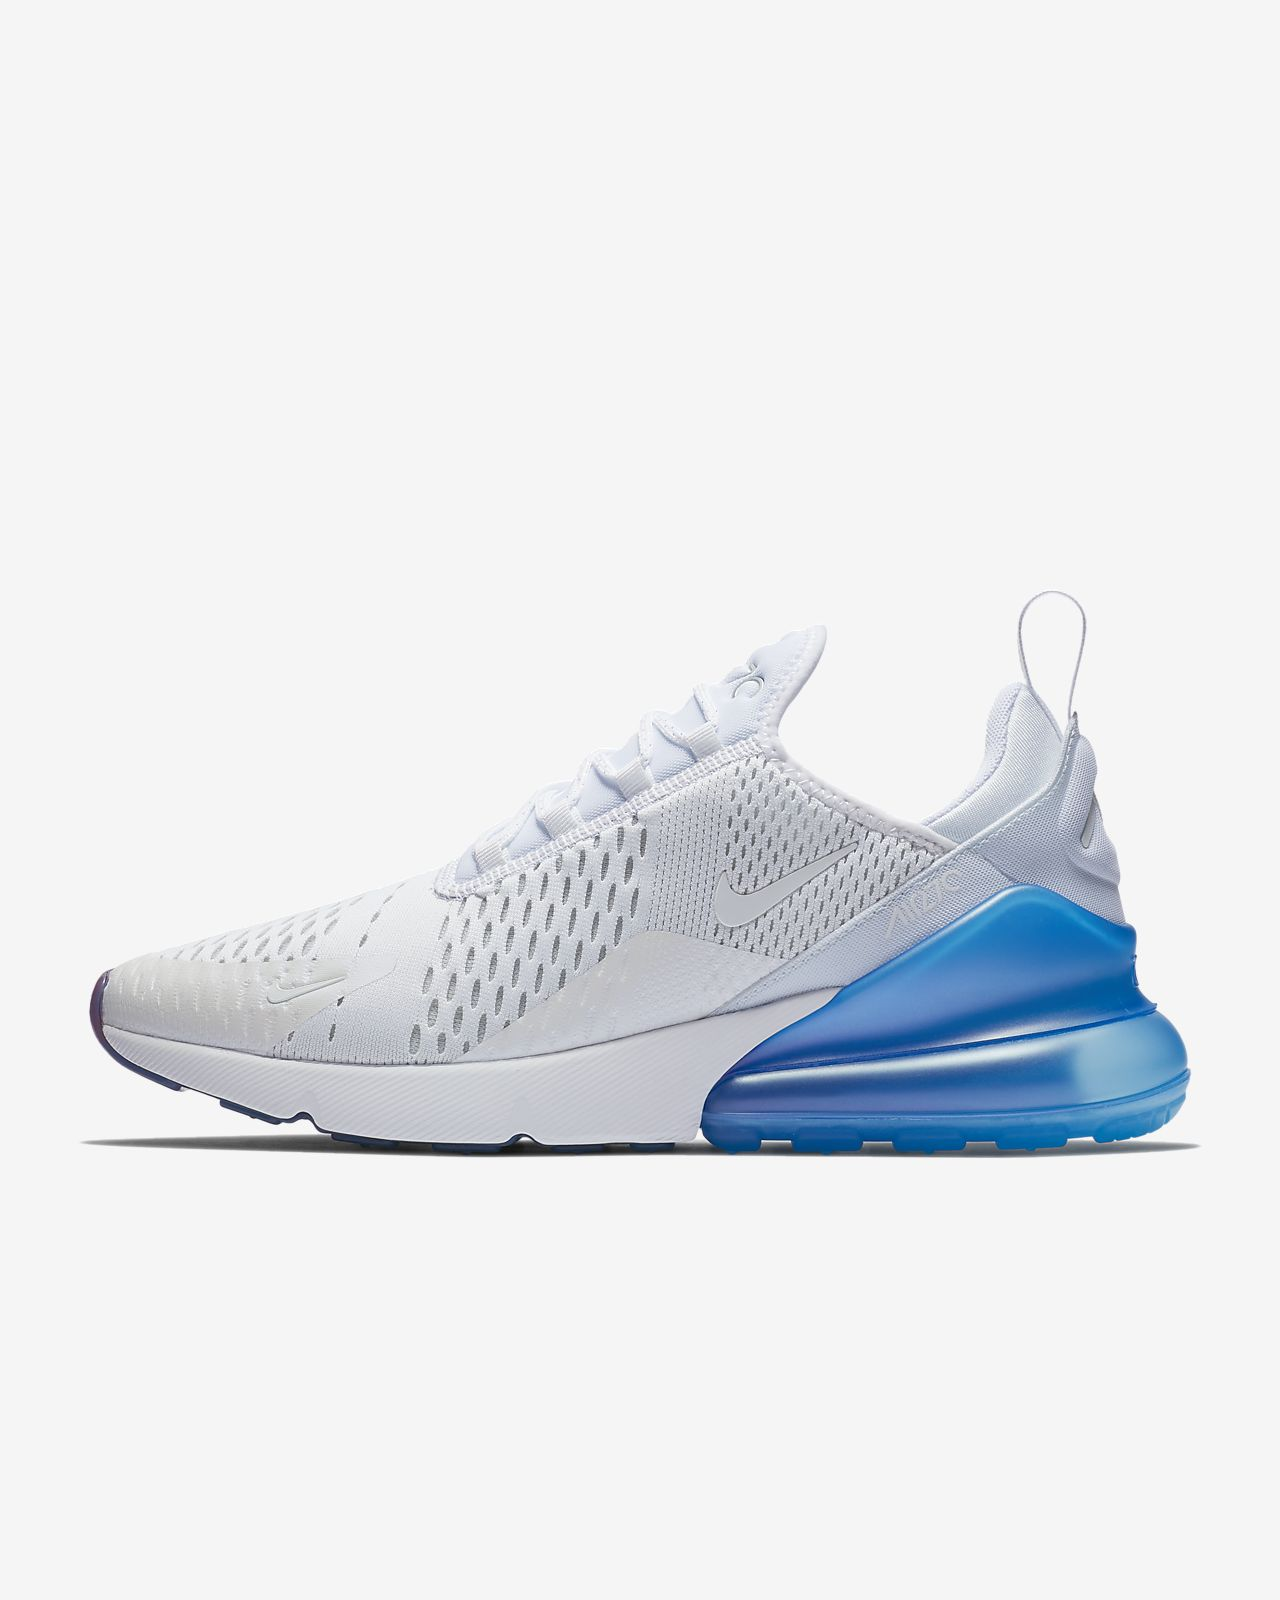 Nike Air Max 270 Mens Shoe